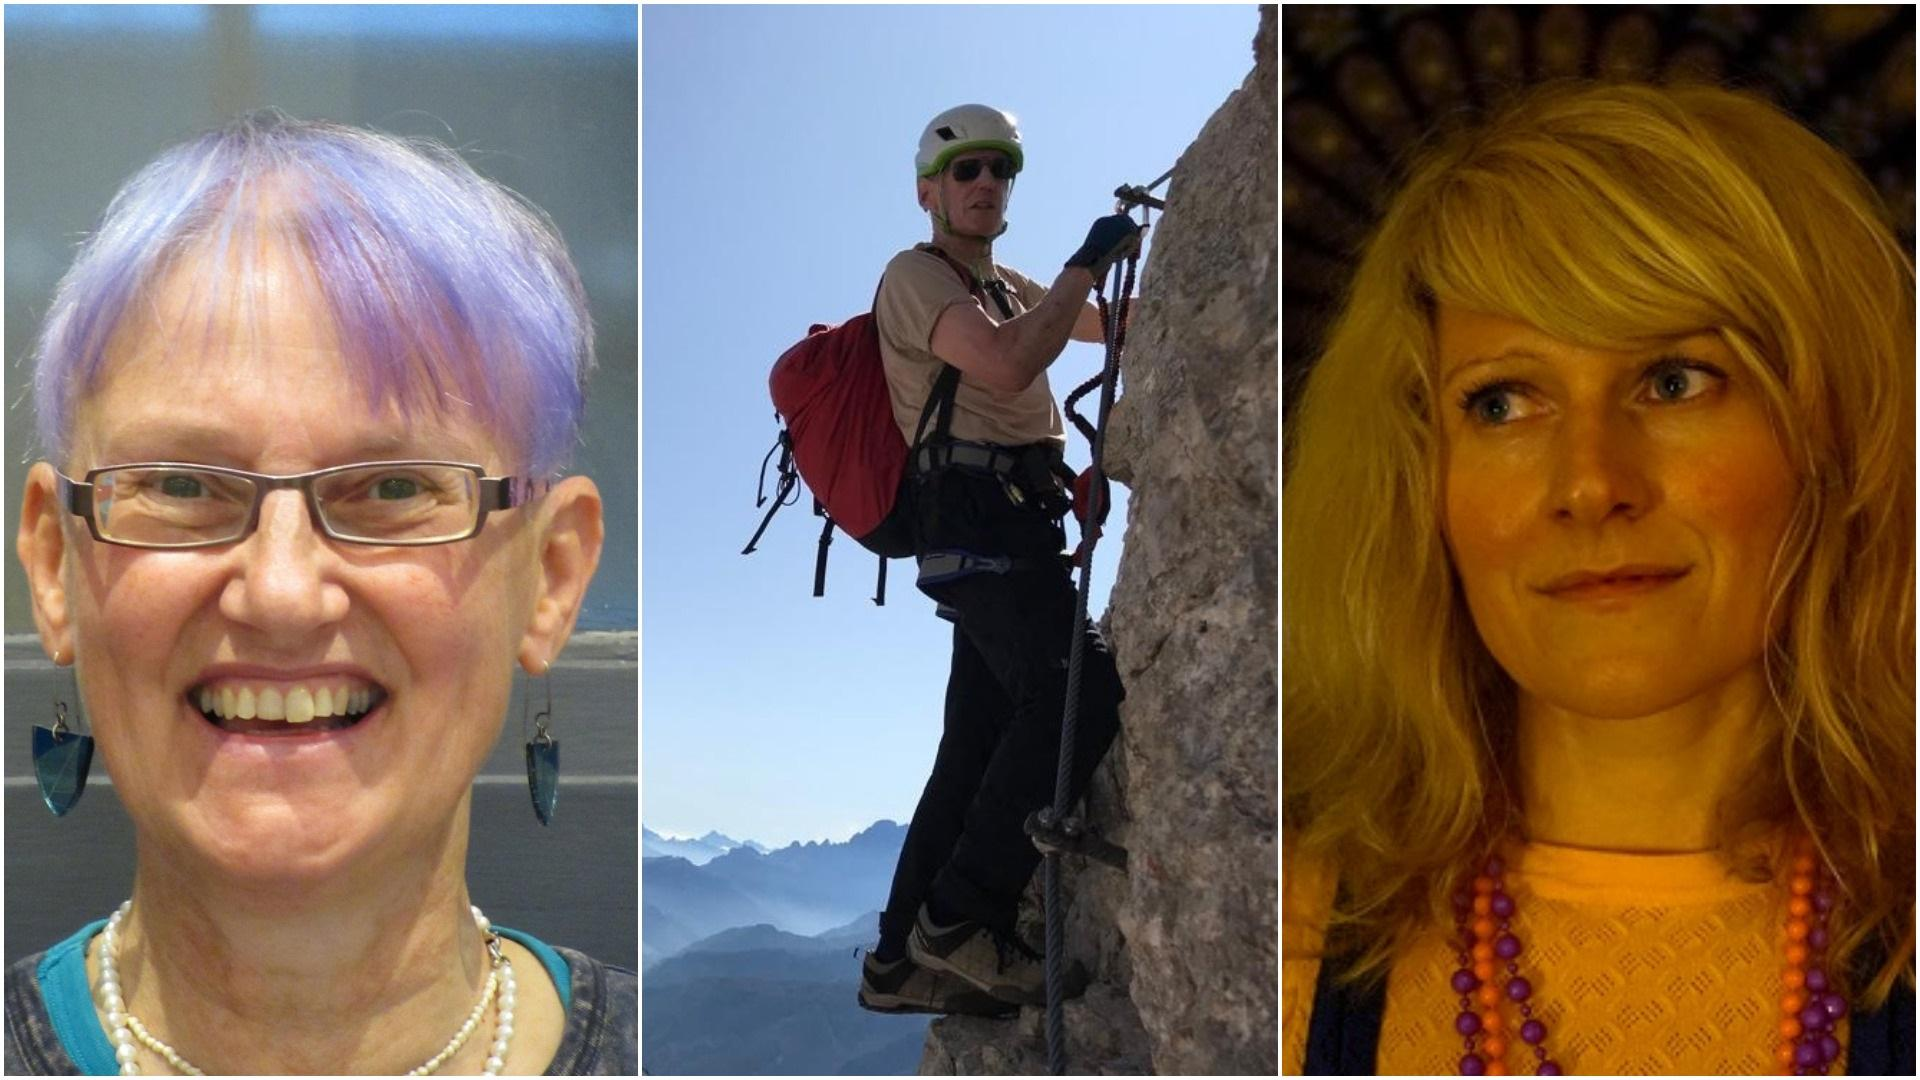 Finding the Words: Poetry from Char March, David Wilson & Katie Greenbrown